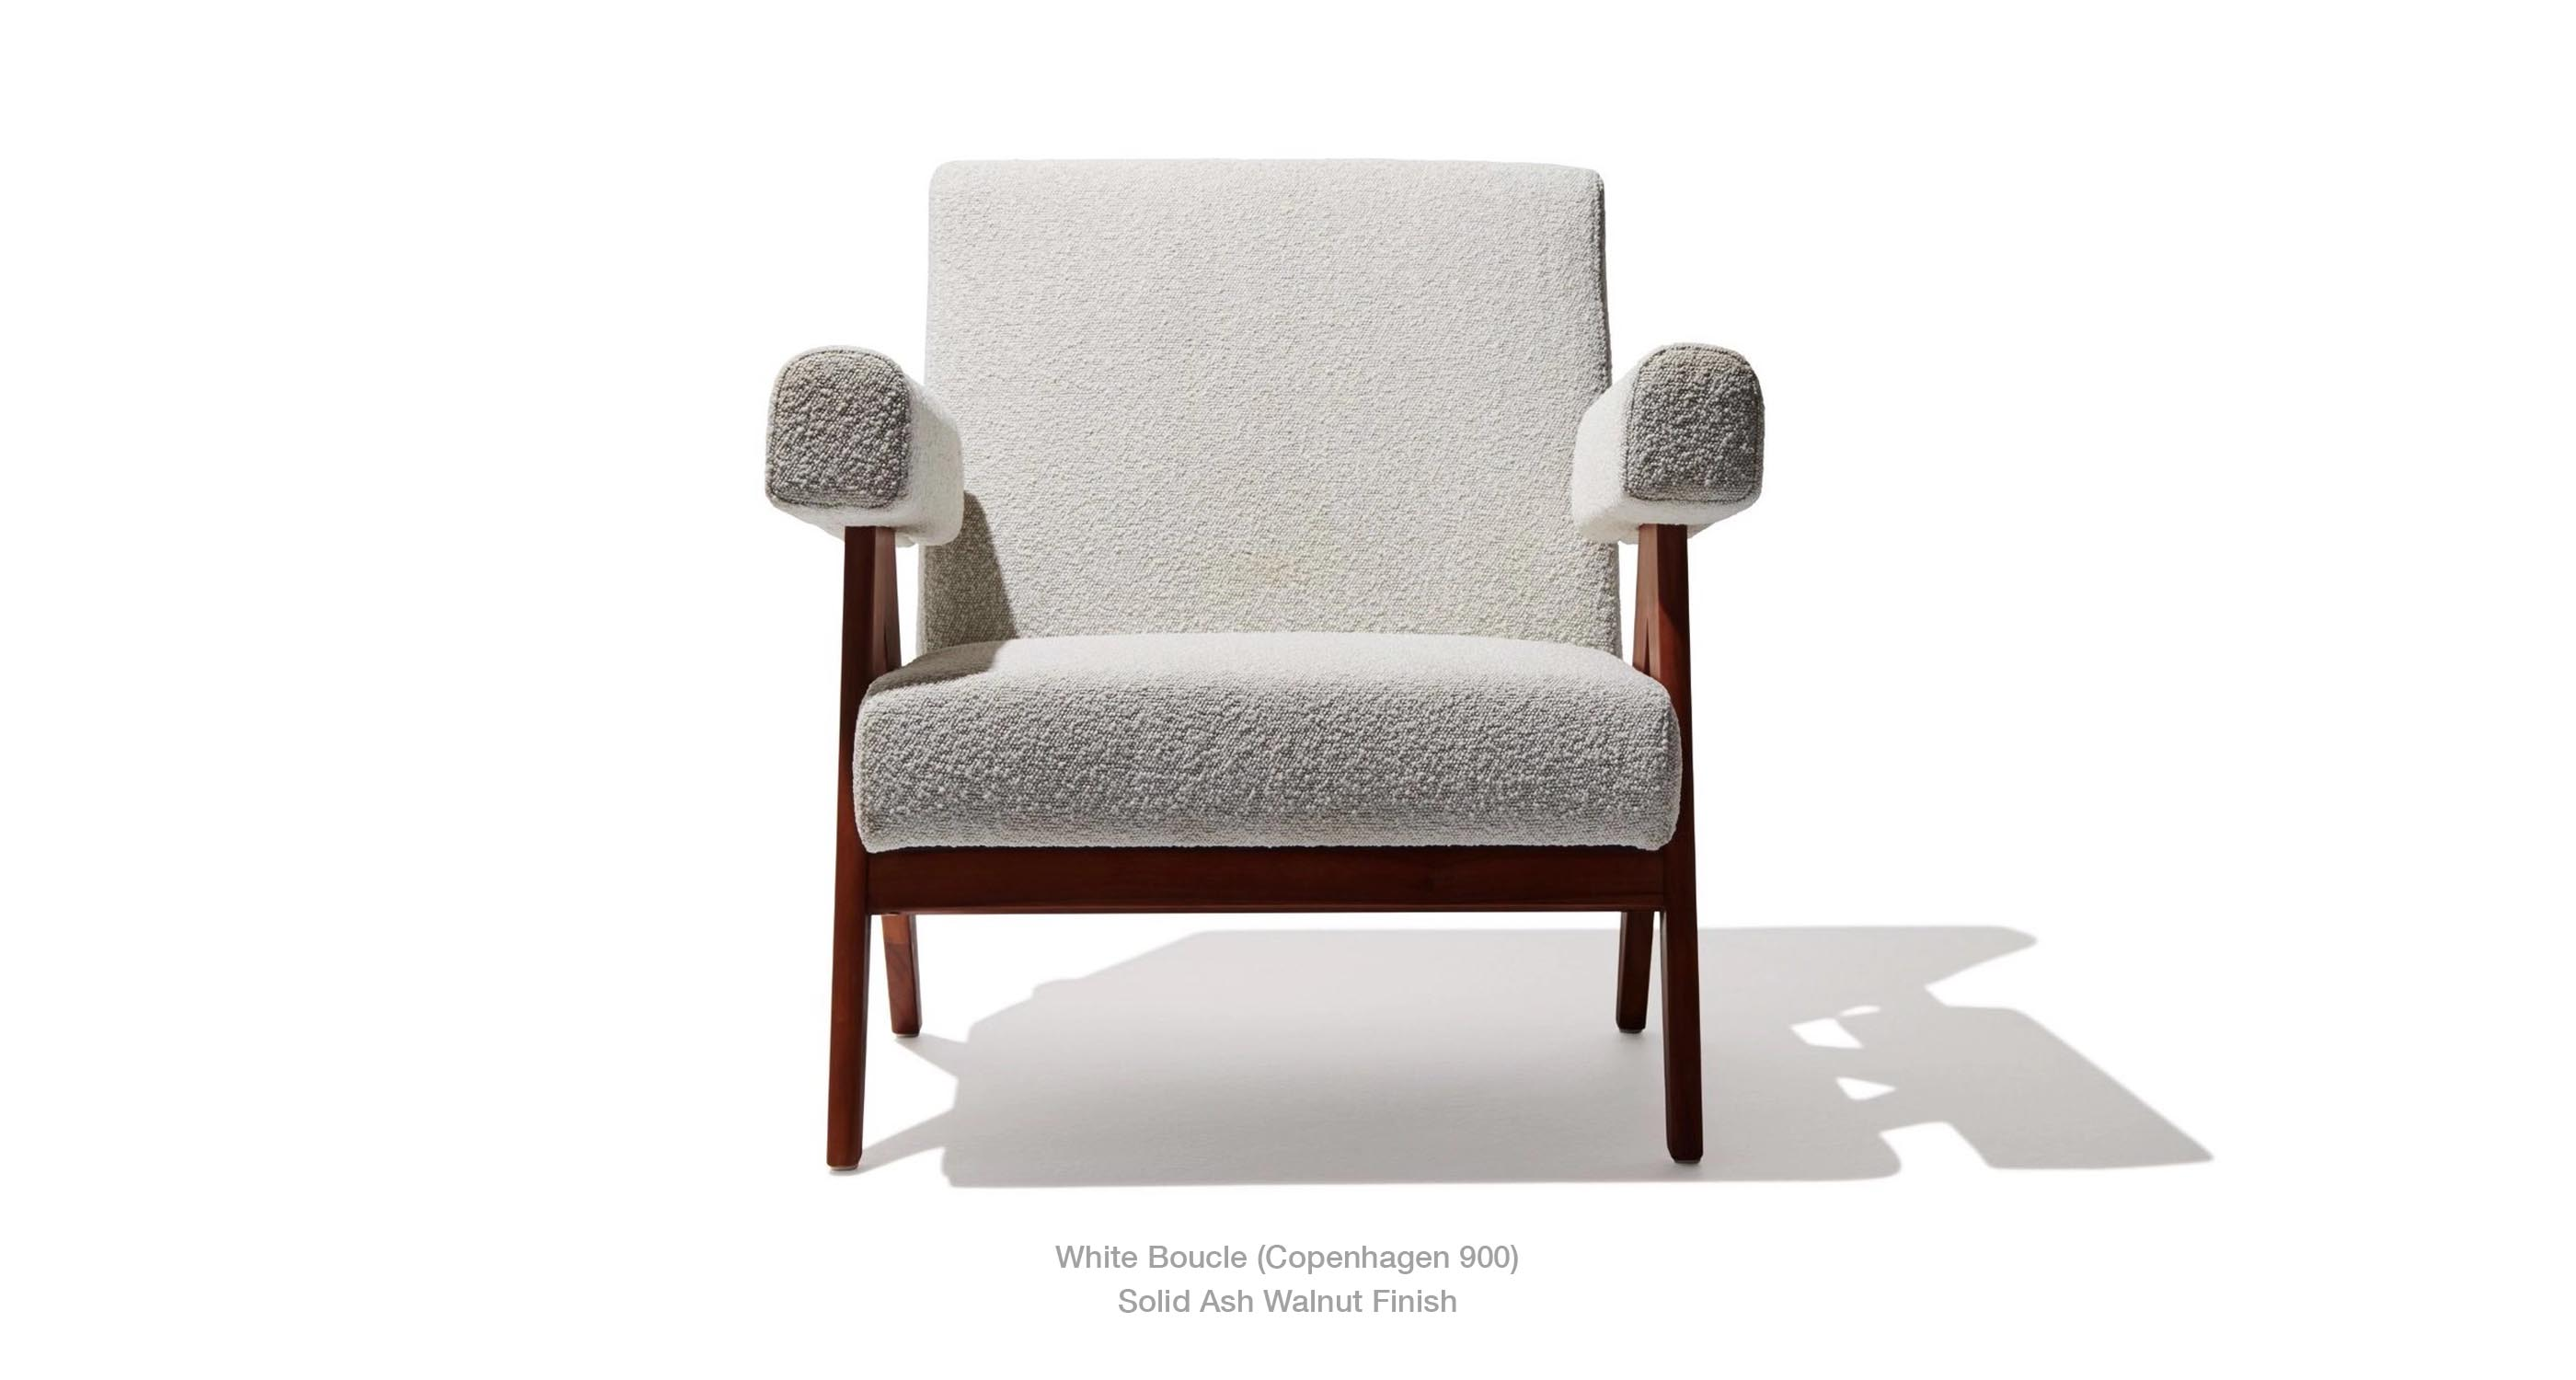 Pierre Lounge White Boucle